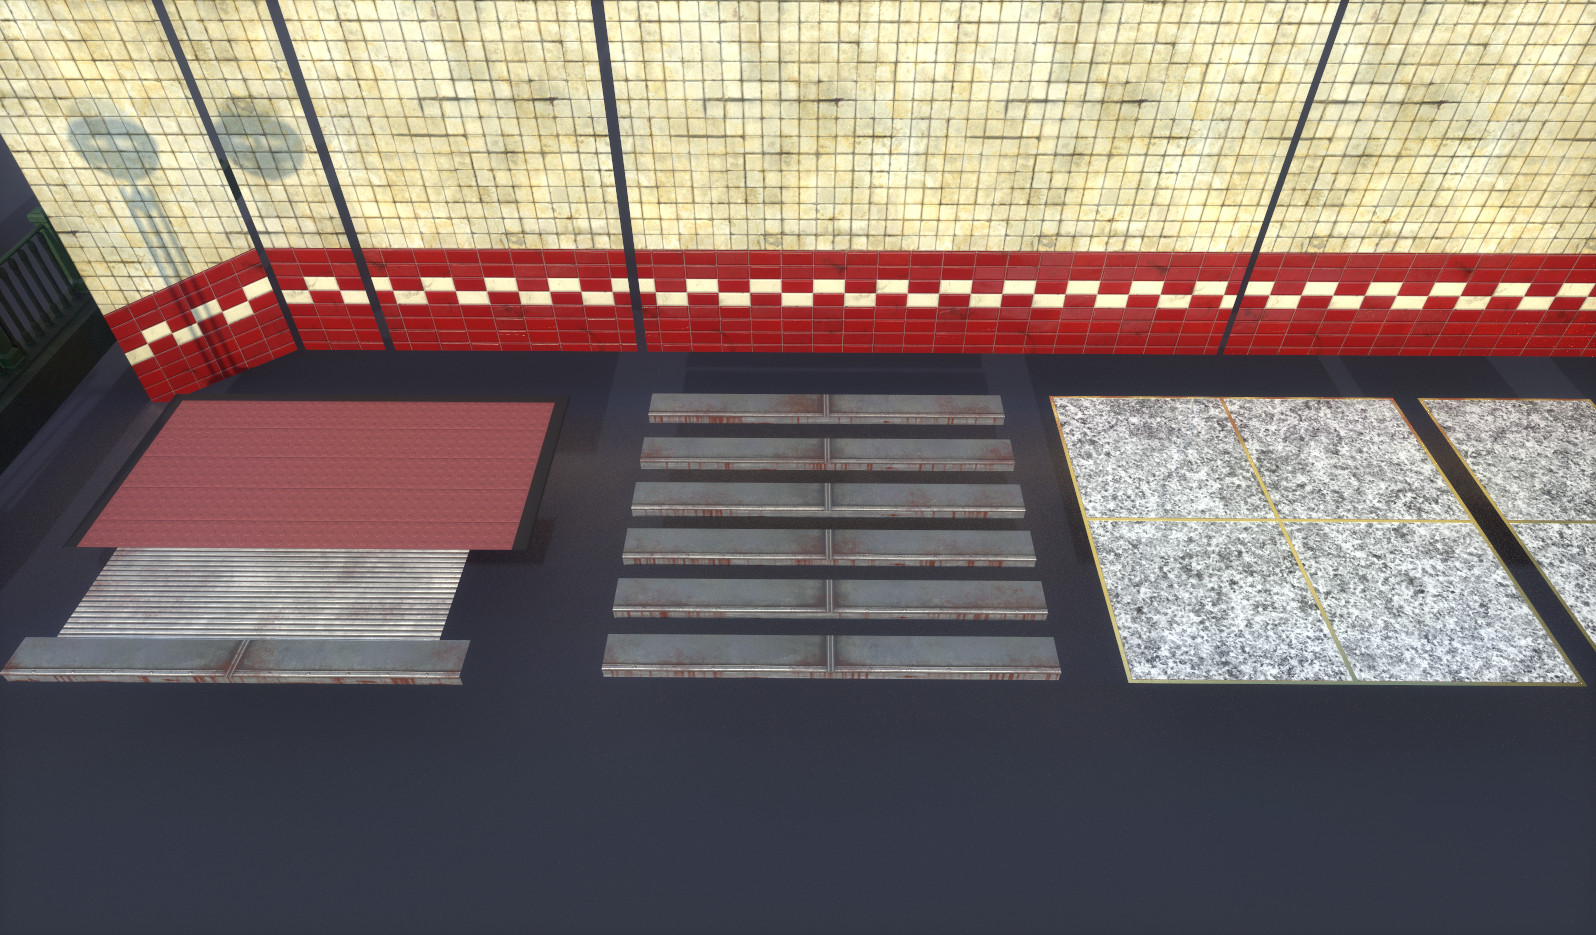 Flooring - (Subway Entrance Mat, Steps, Marble Floor)